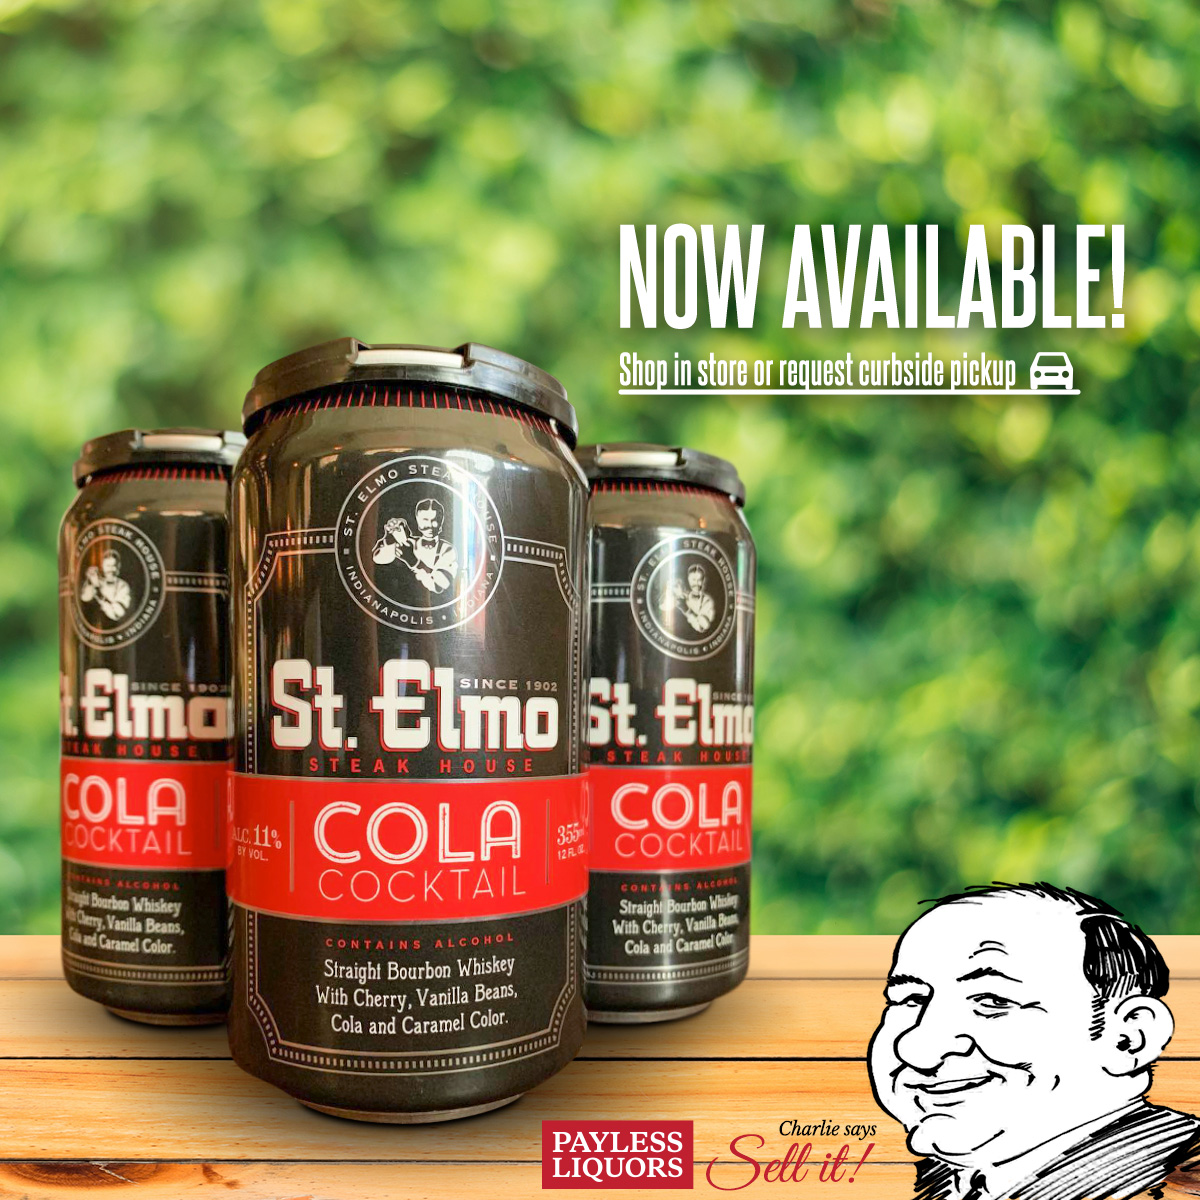 St. Elmo's Craft Cola Cocktail